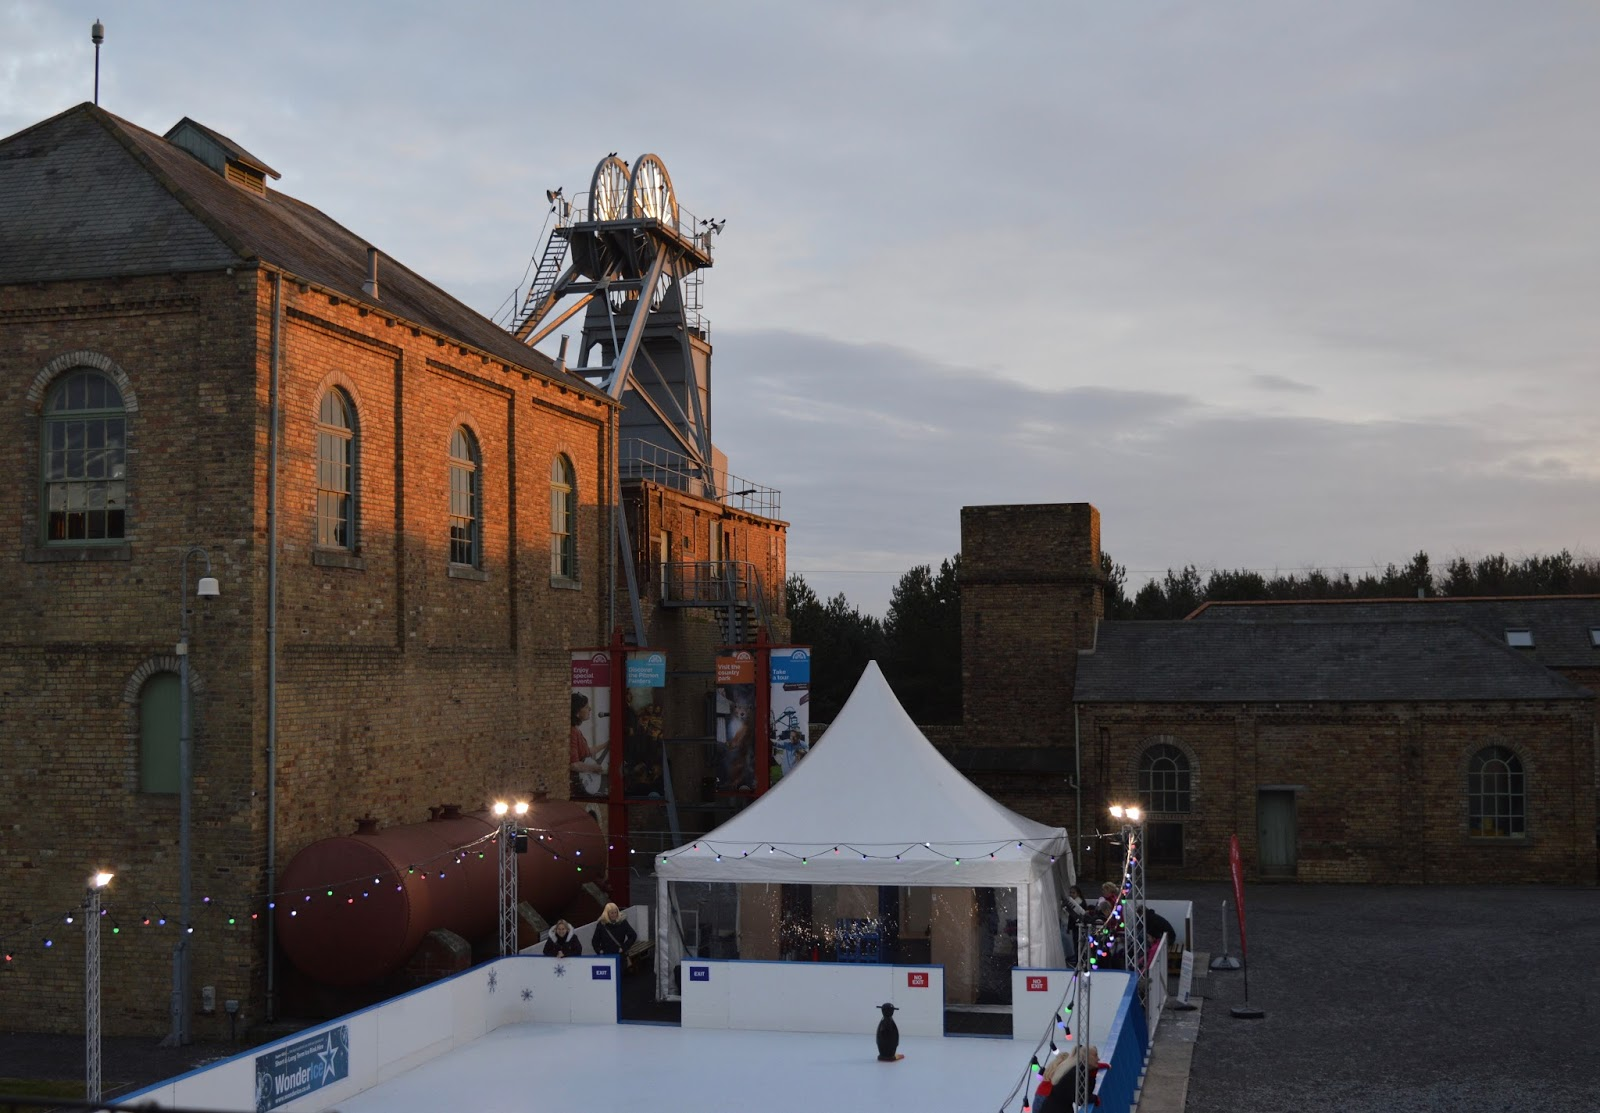 Frost of Forgetfulness | A FREE Winter Trail and activity at Woodhorn Museum in Northumberland (continues until 23rd December)